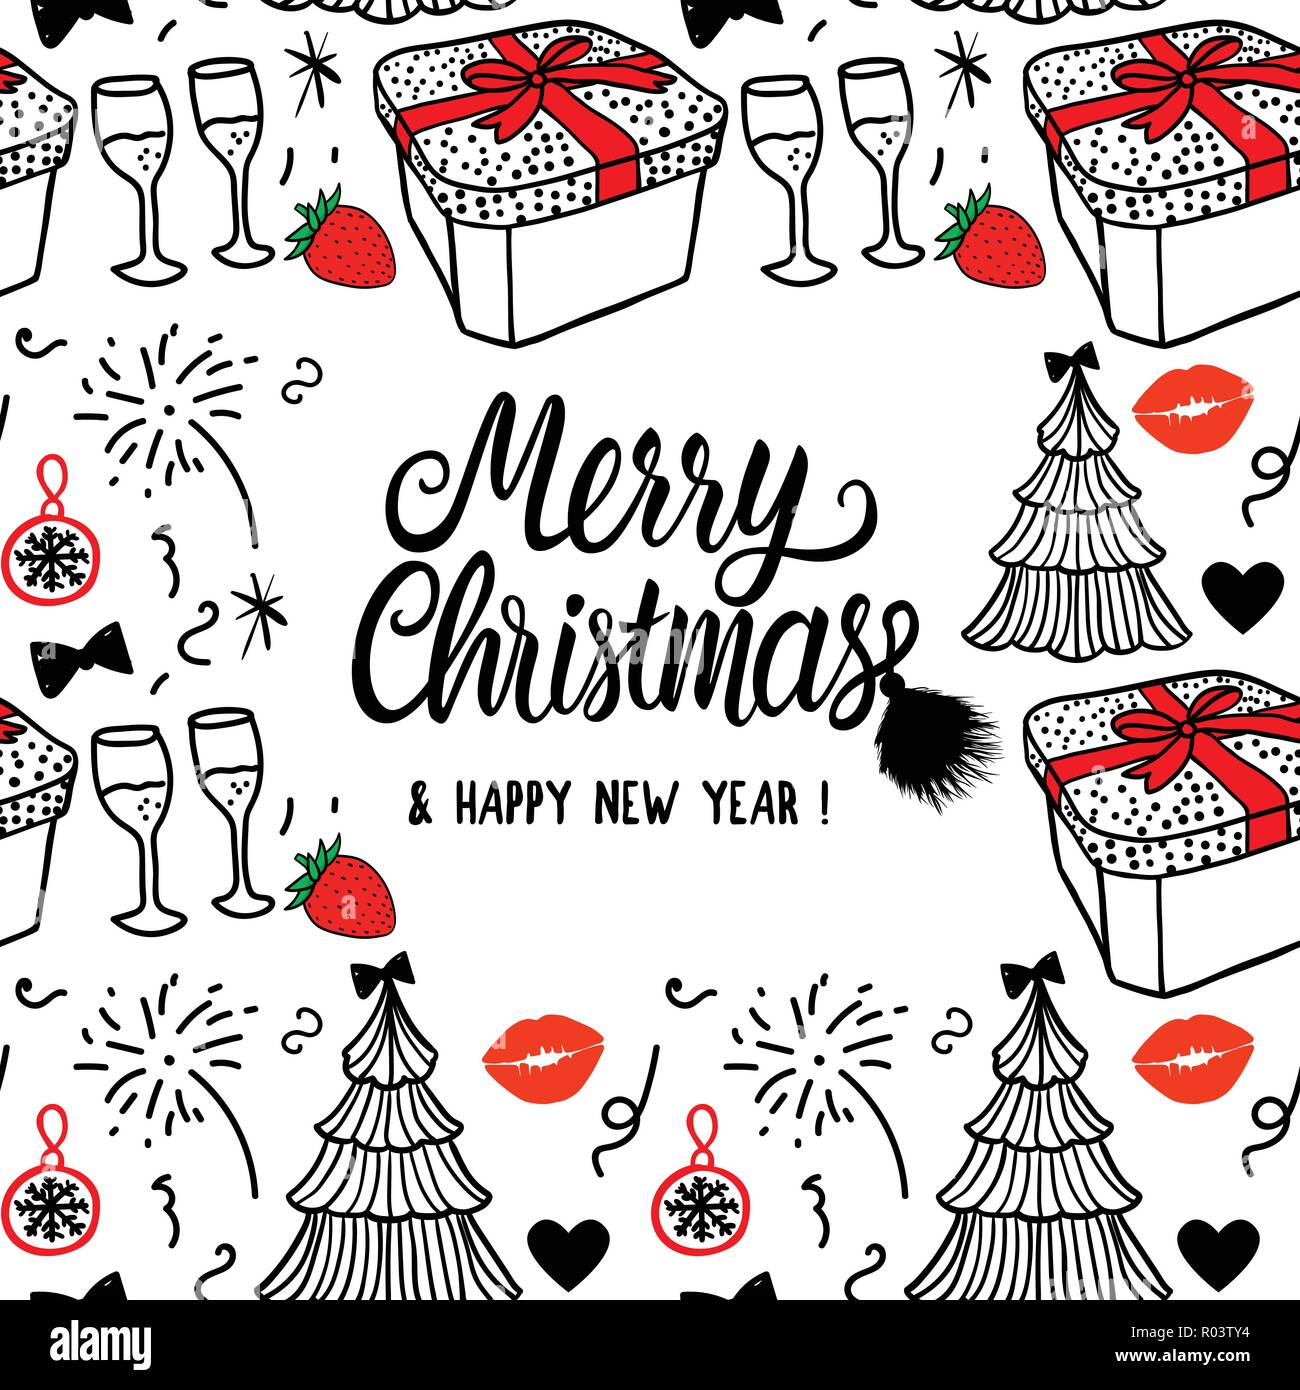 merry christmas and happy new year card fashion sketch celebration gift box tree and fireworks black and red hand drawn vector illustration isolated on